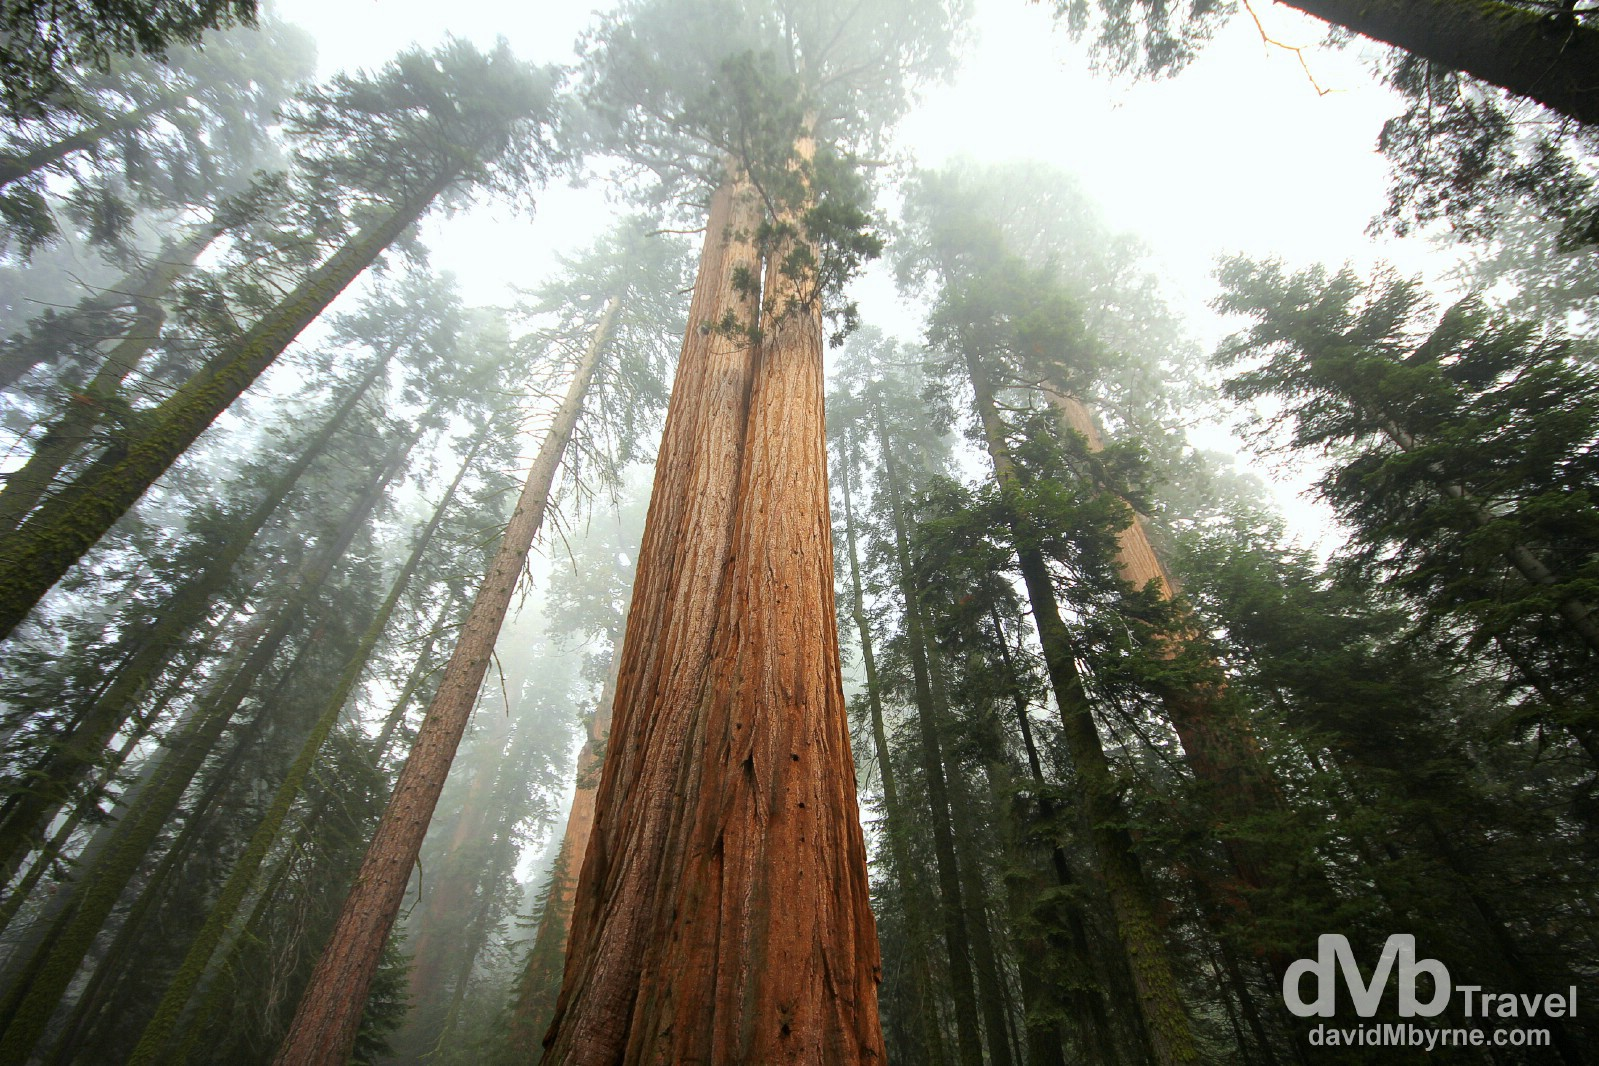 Residents of the Giant Forest of Sequoia National Park, California, USA. April 2nd 2013.